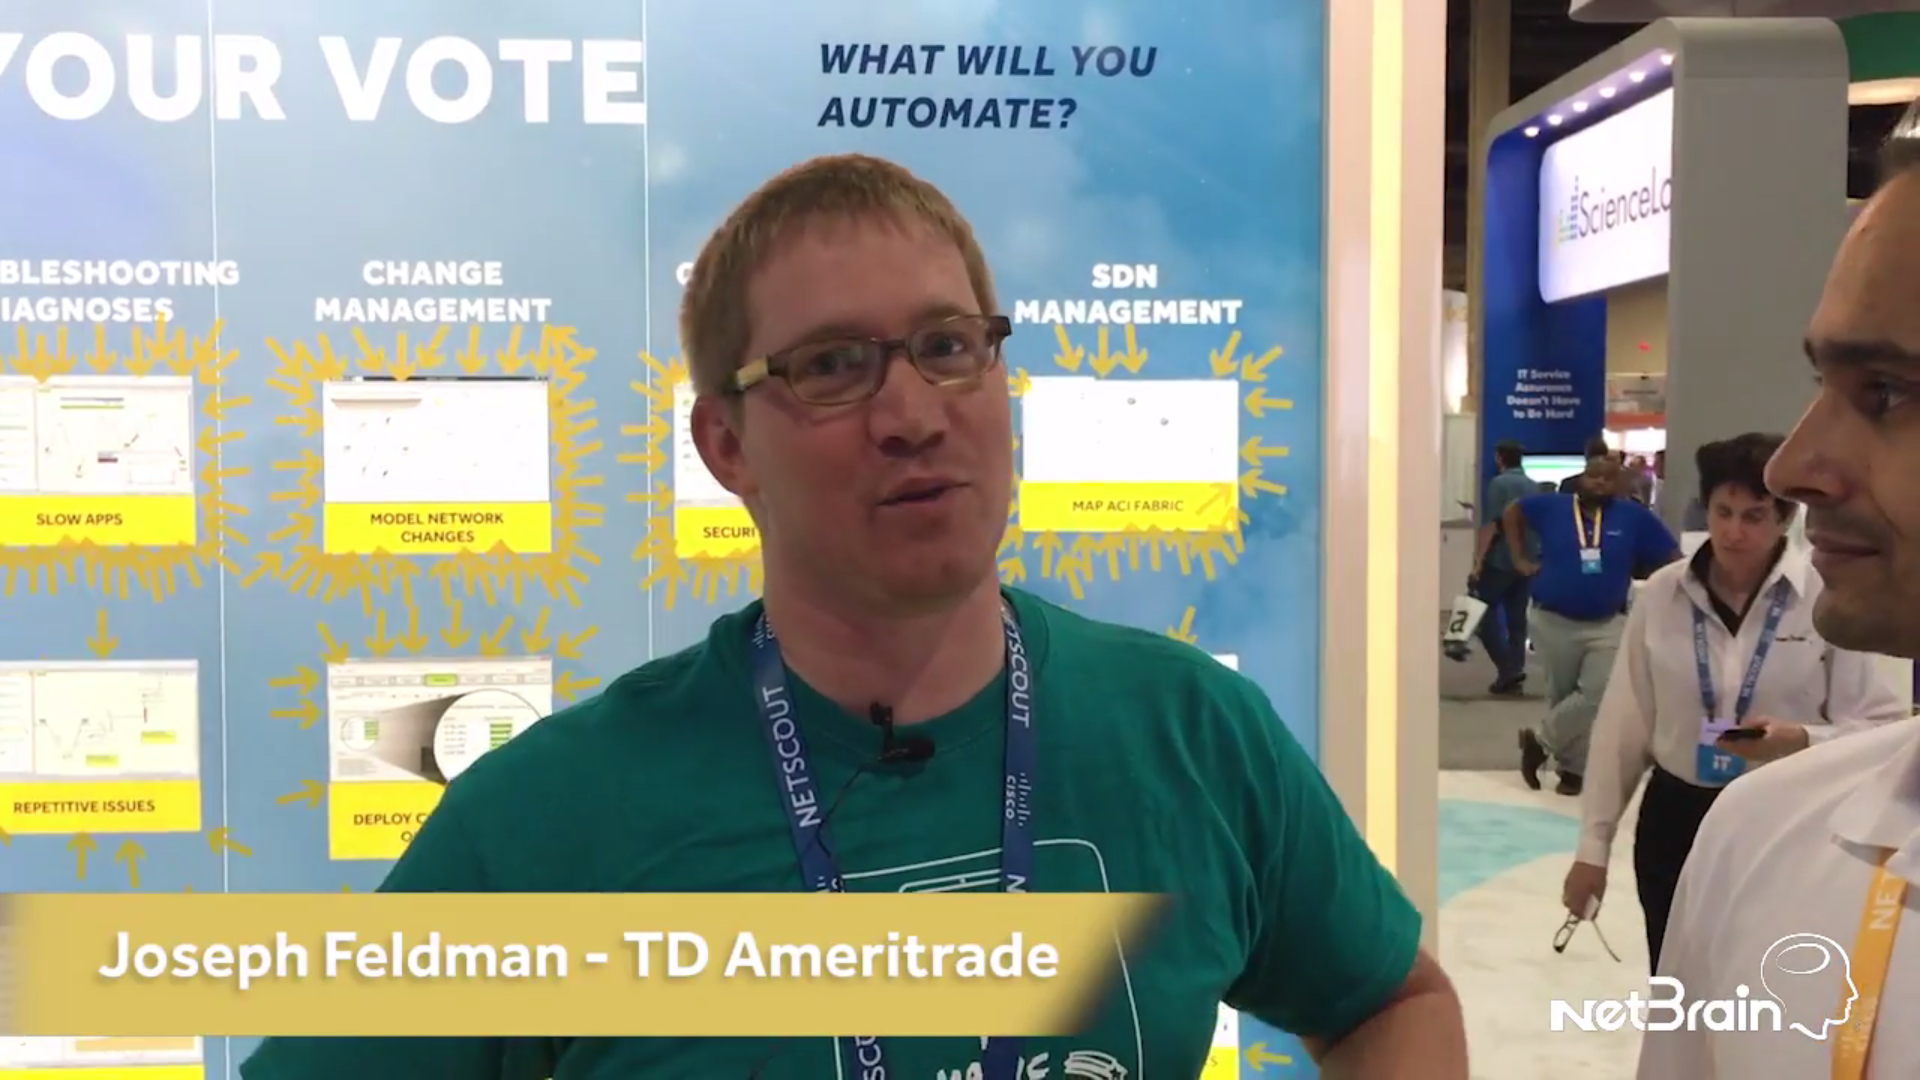 TD Ameritrade Interview With NetBrain at CLUS2017